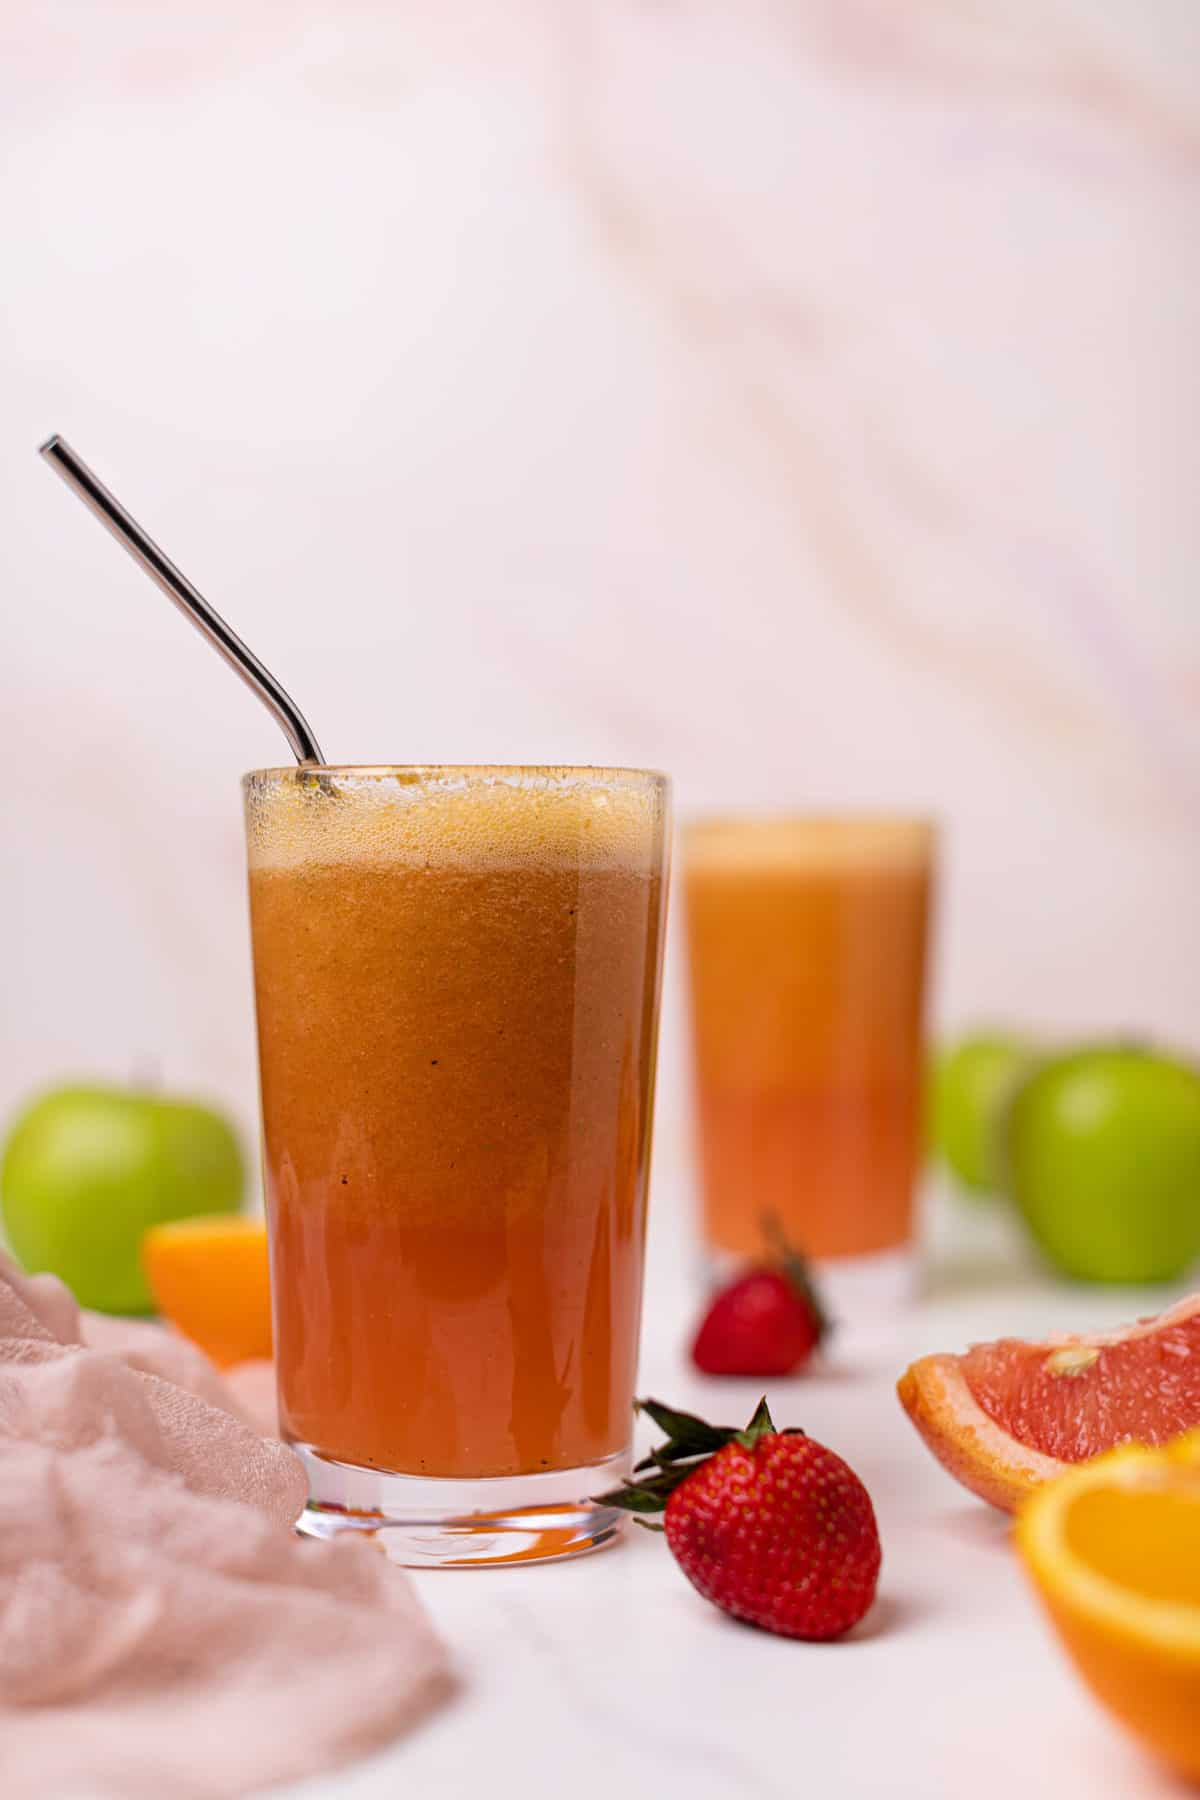 Apple Citrus Strawberry Juice in two glasses with a metal straw and fresh fruit